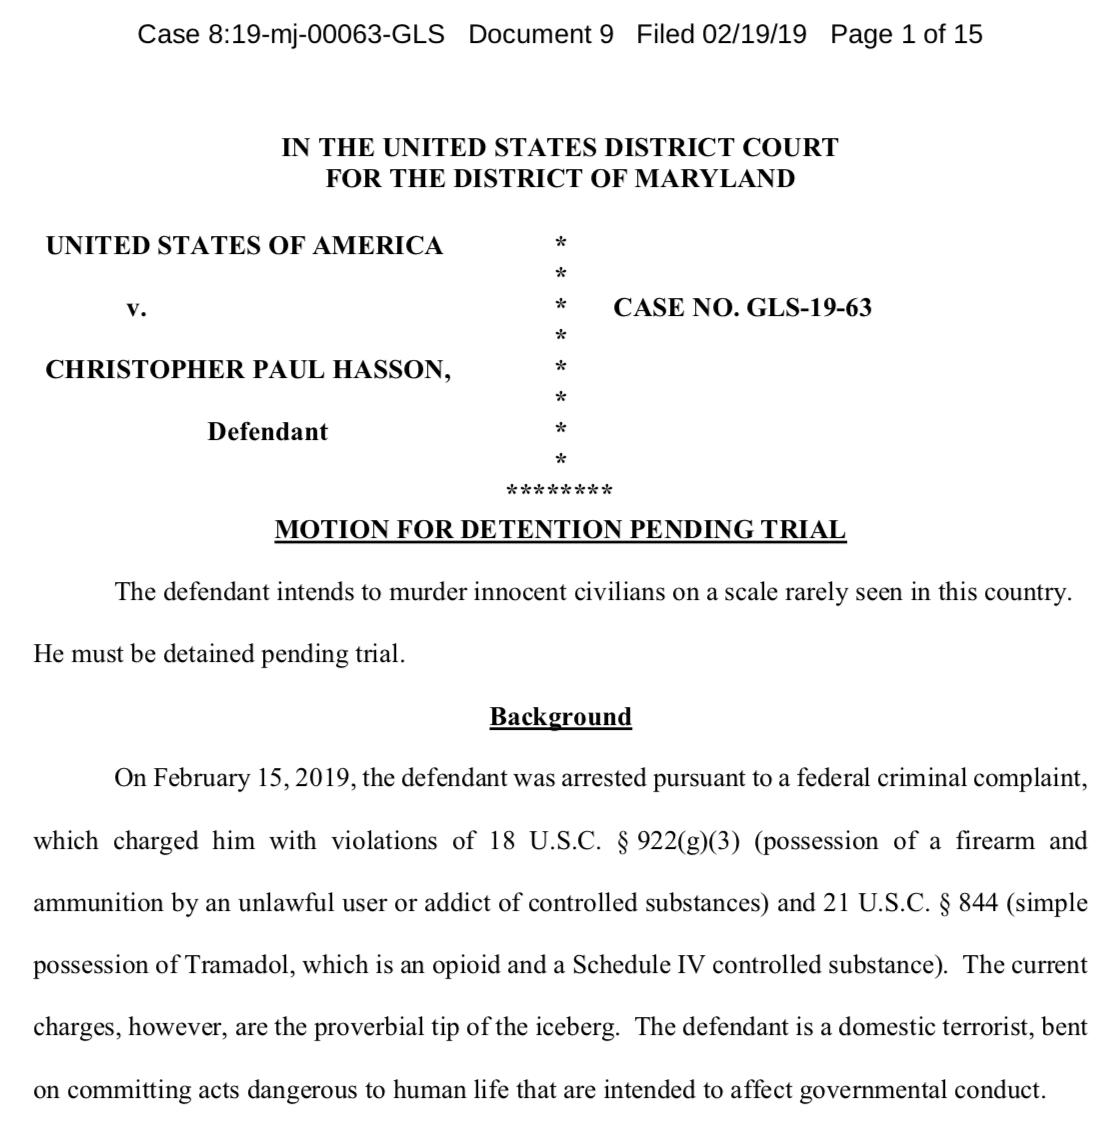 This detention memo @SeamusHughes uncovered is truly unsettling. The prosecutors call the defendant a domestic terrorist. They lay out his nazi writings, his accumulation of weapons, and his excel target list full of cable news figures and politicians. https://assets.documentcloud.org/documents/5745084/Hasson-Detention-Memo.pdf…